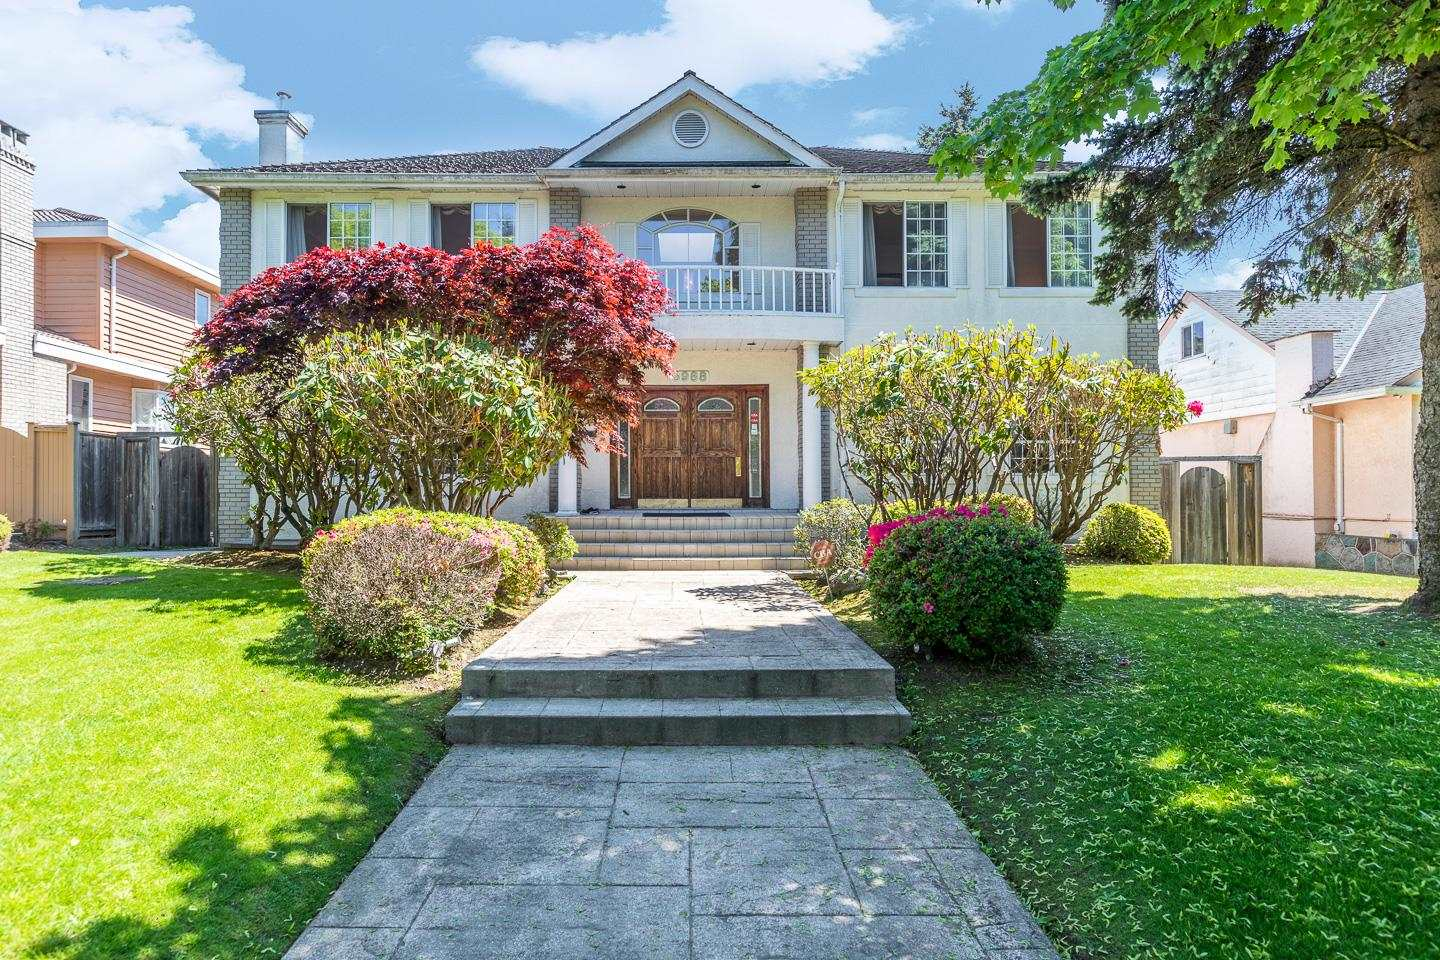 6988 SELKIRK STREET - South Granville House/Single Family for sale, 7 Bedrooms (R2602259)